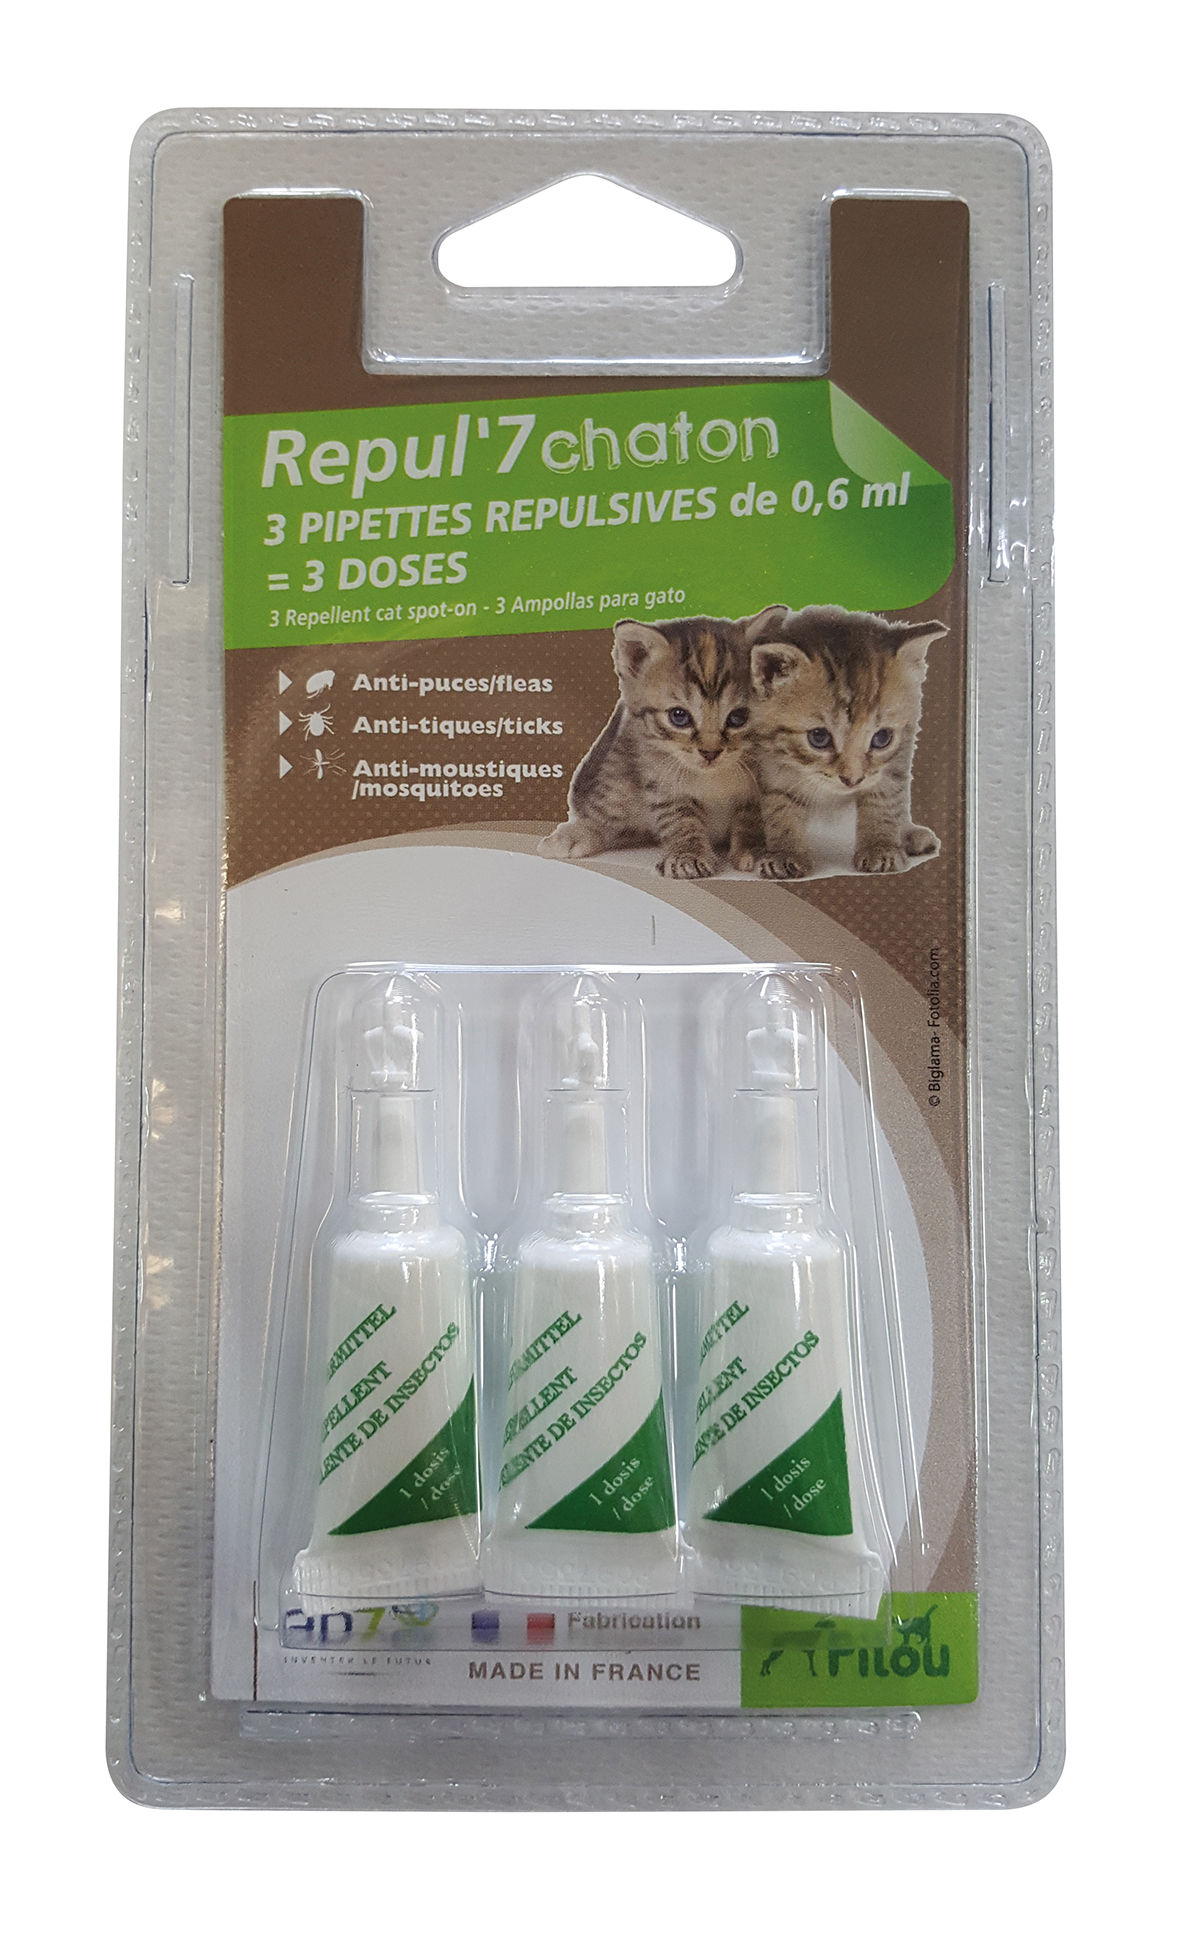 173856 pipette chaton 3x0,6ml PILOU2